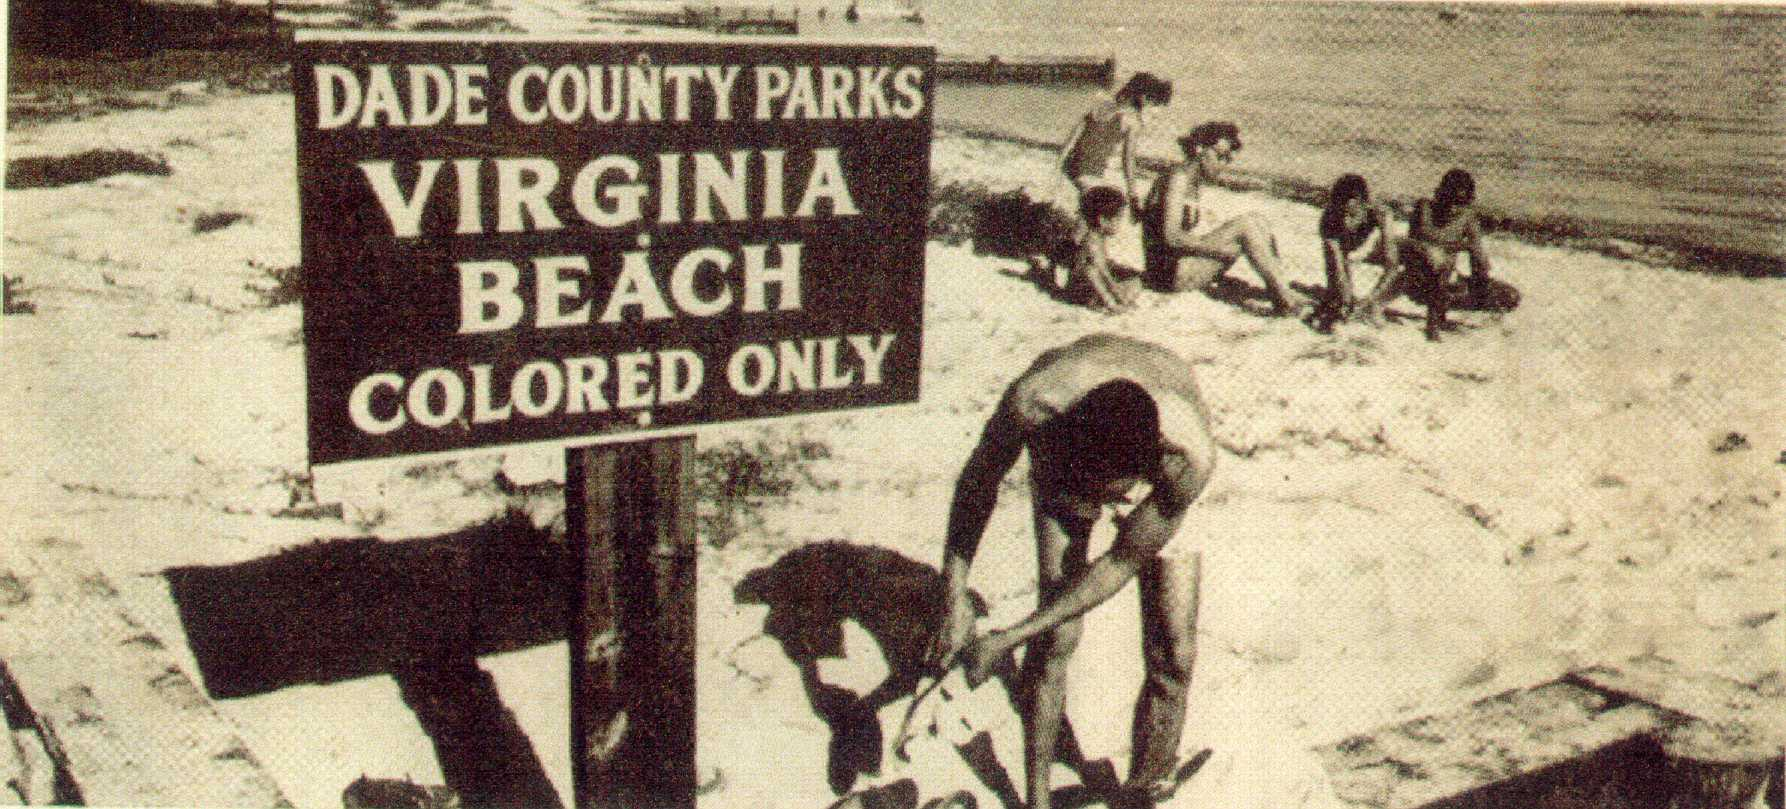 Virginia Beach Colored Only